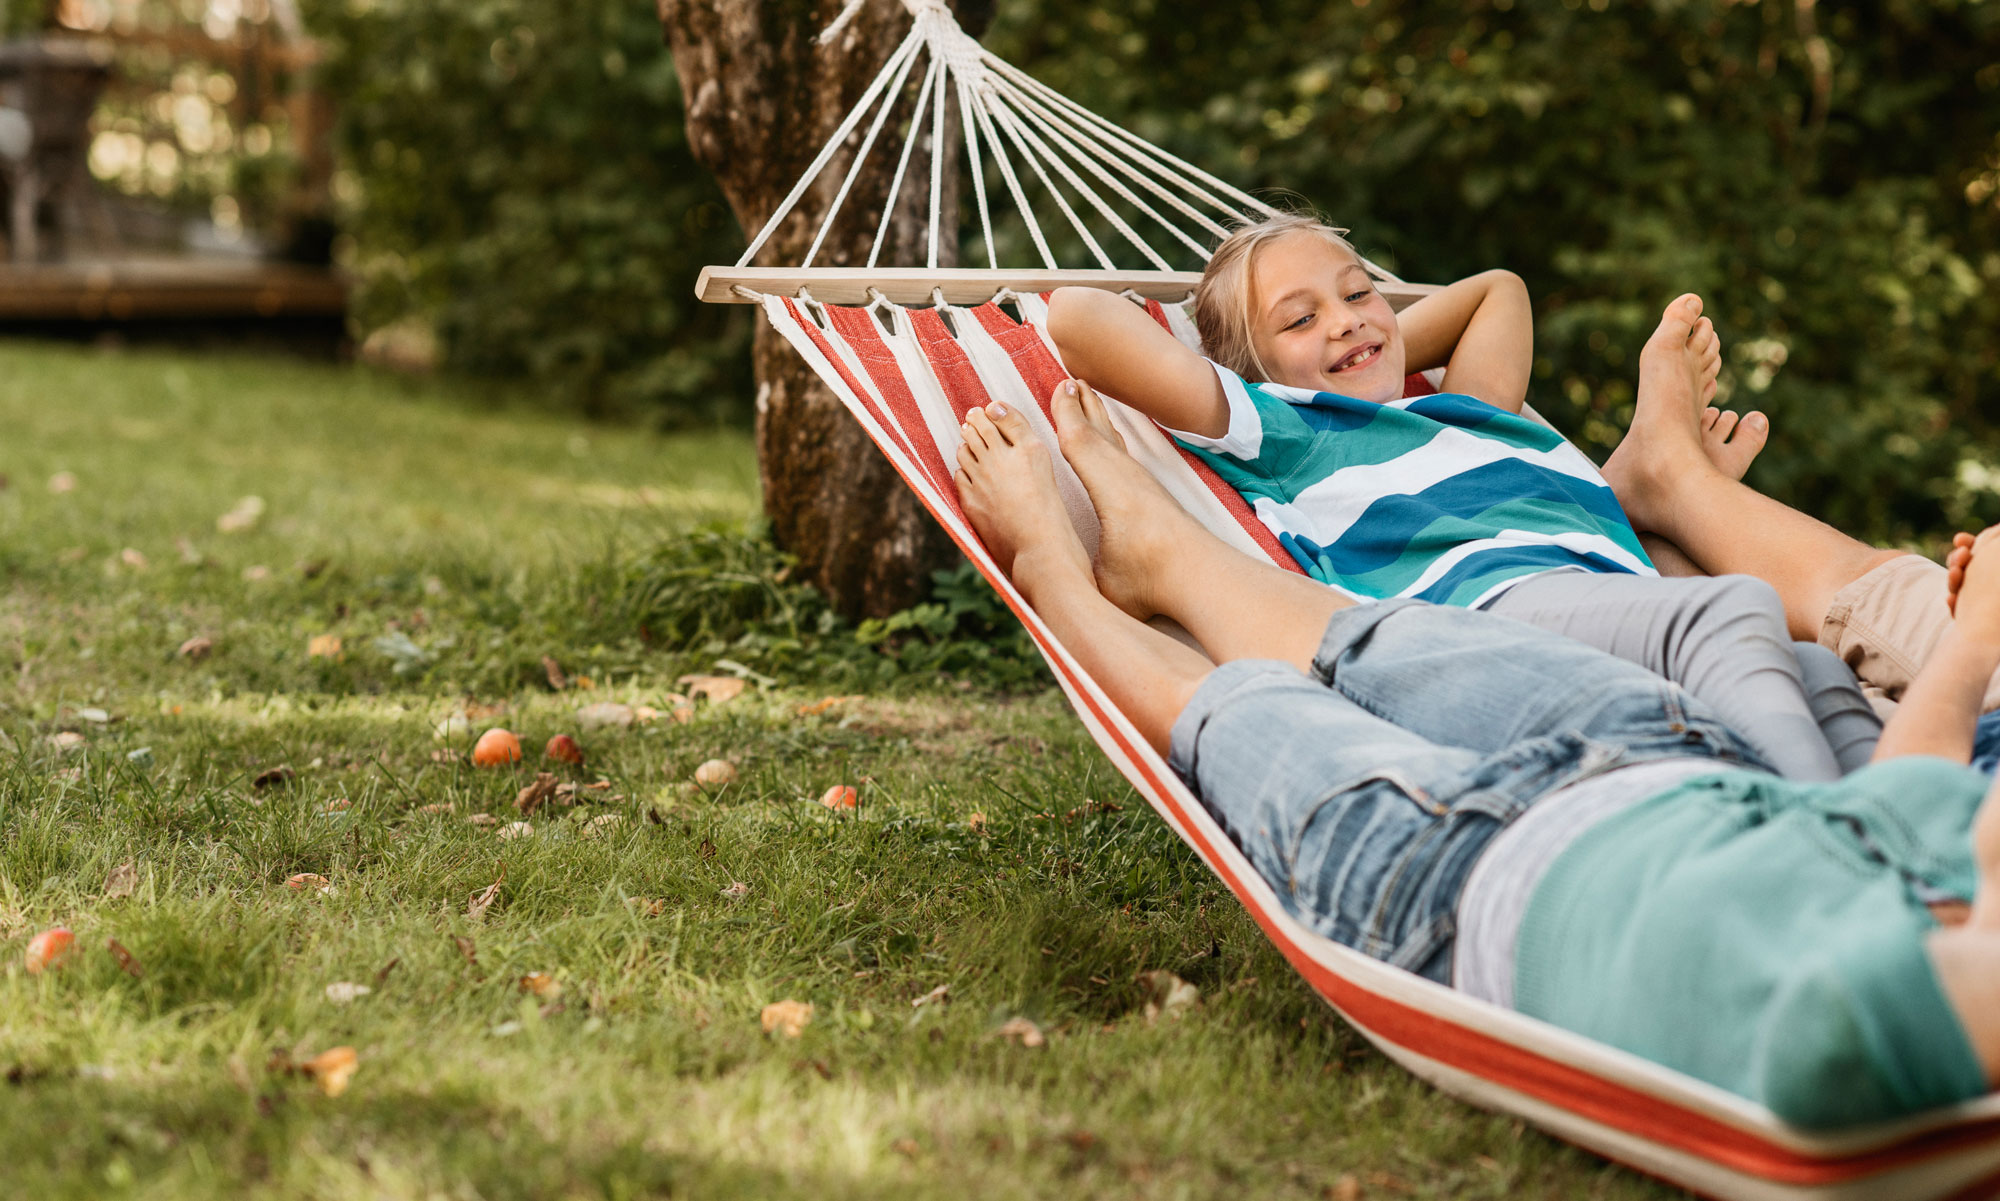 Children in hammock.